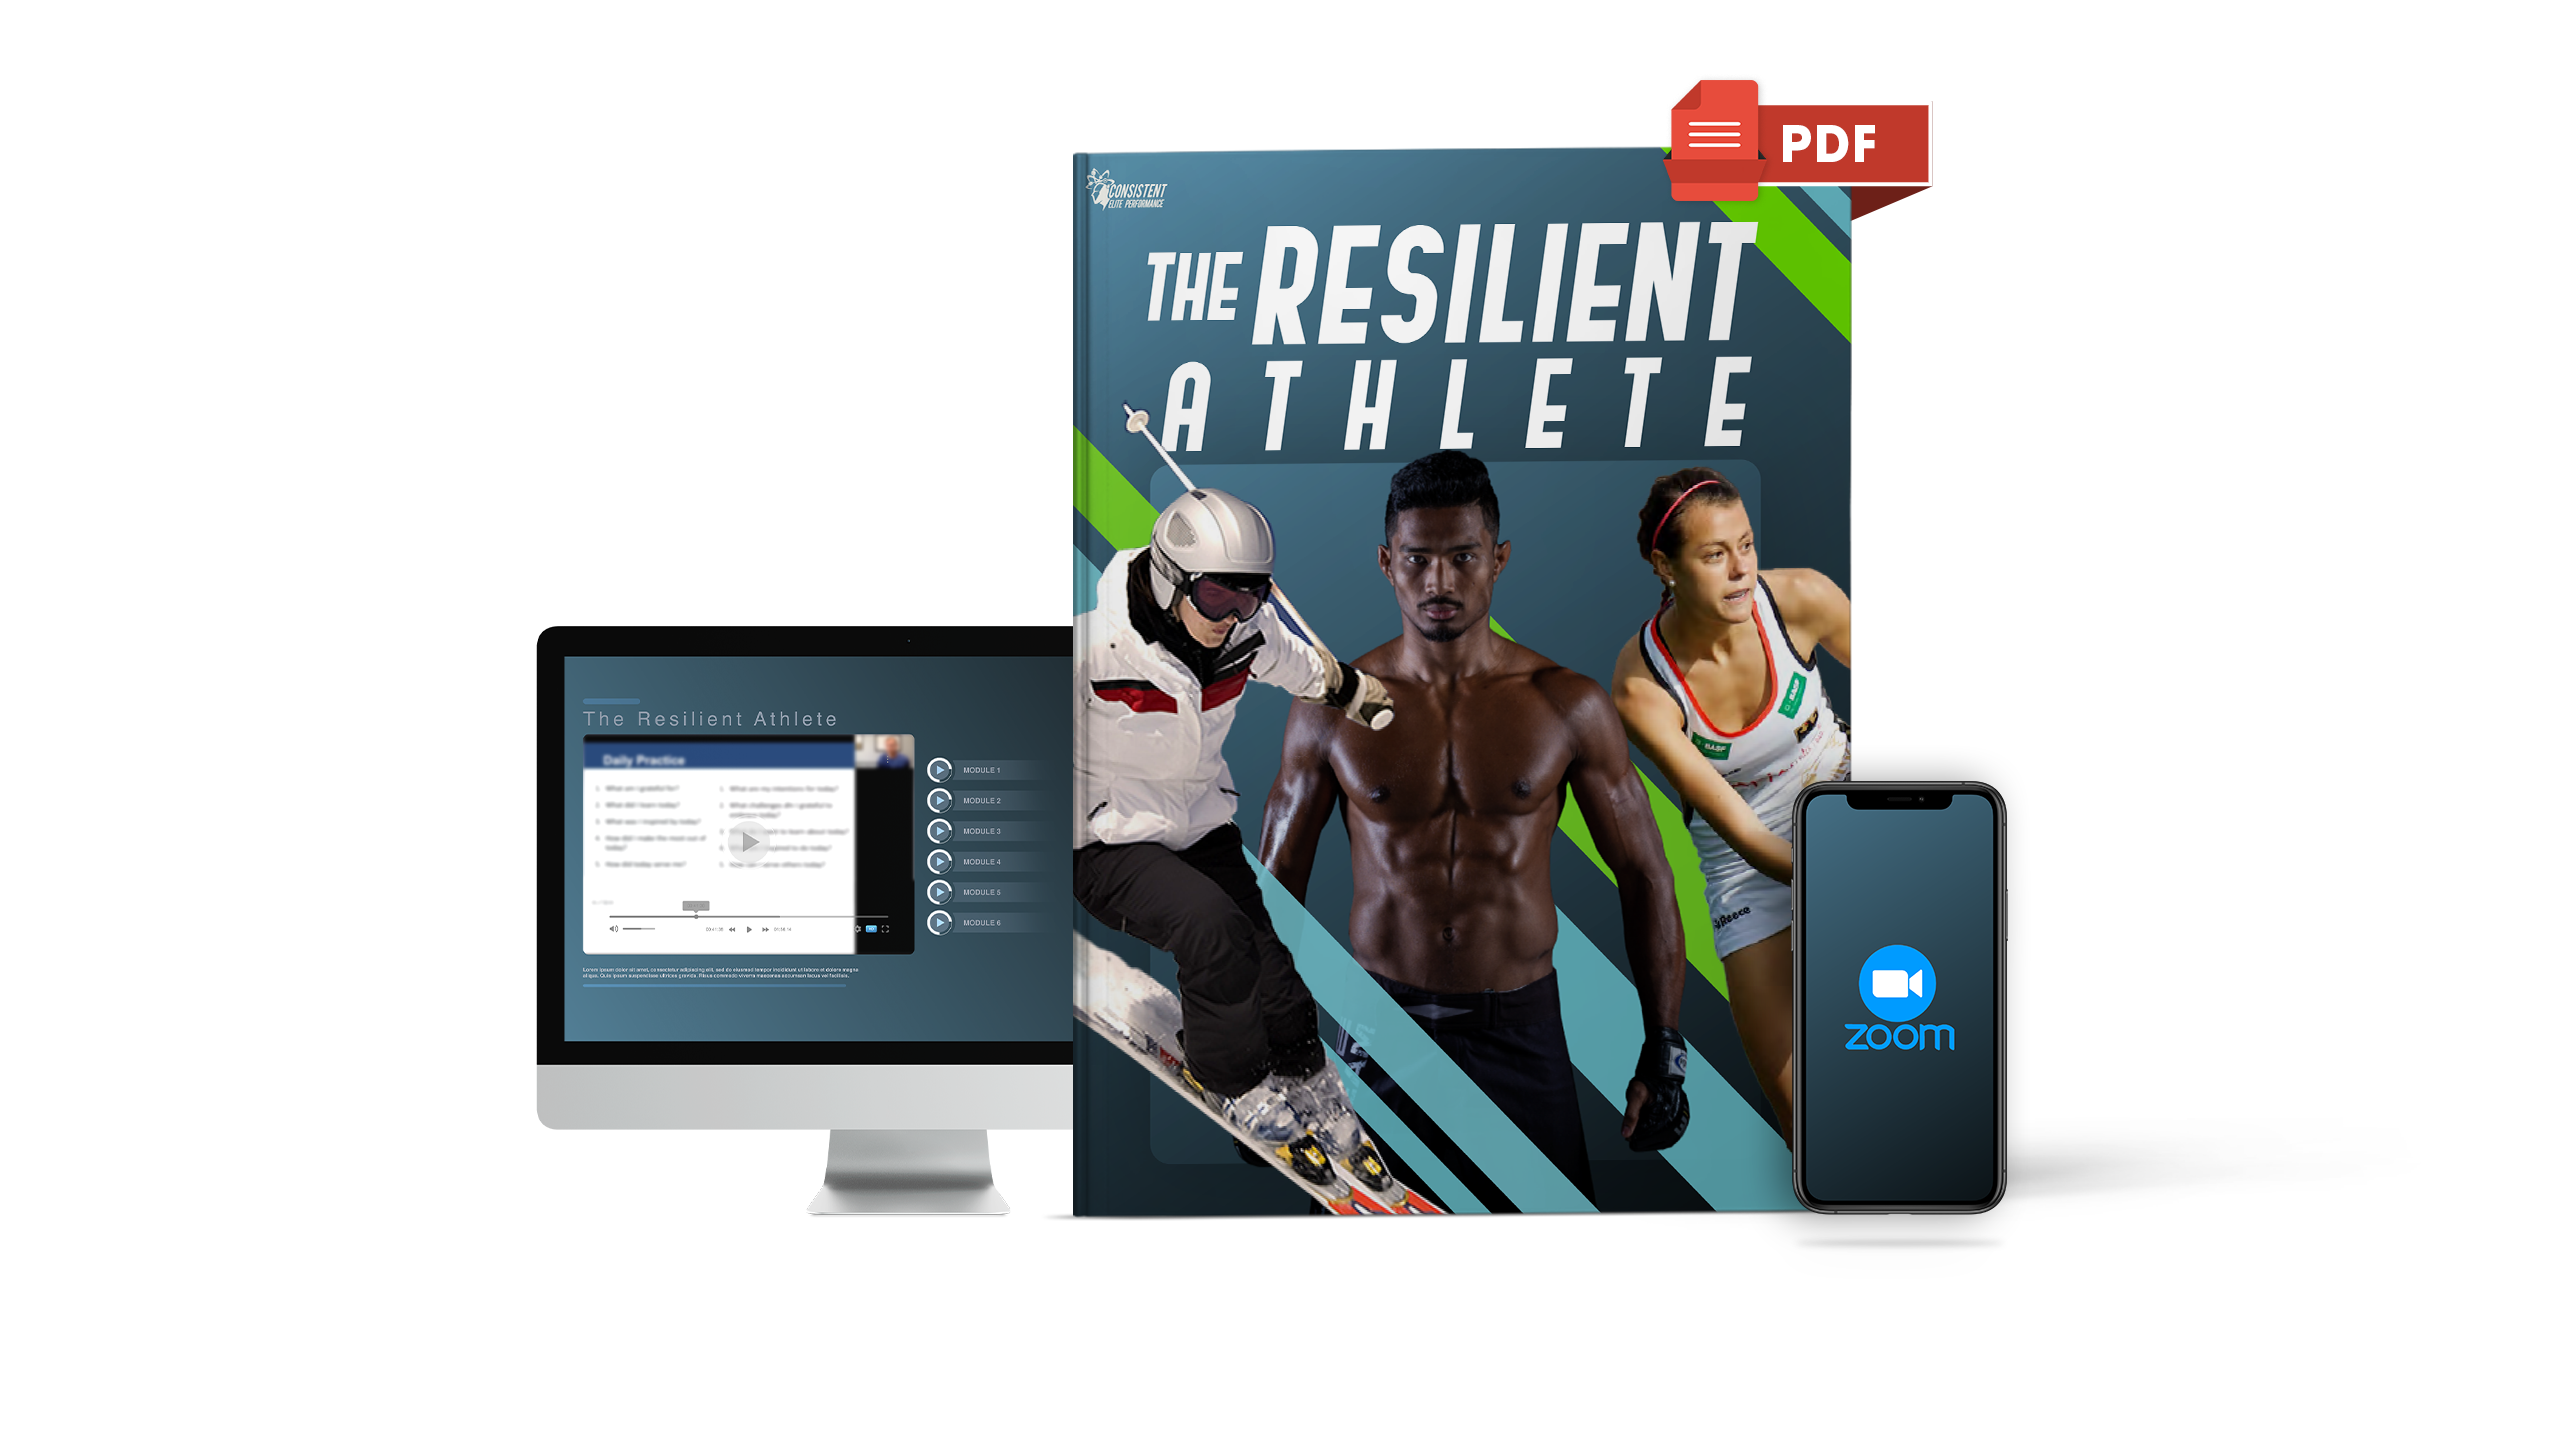 The Resilient Athlete